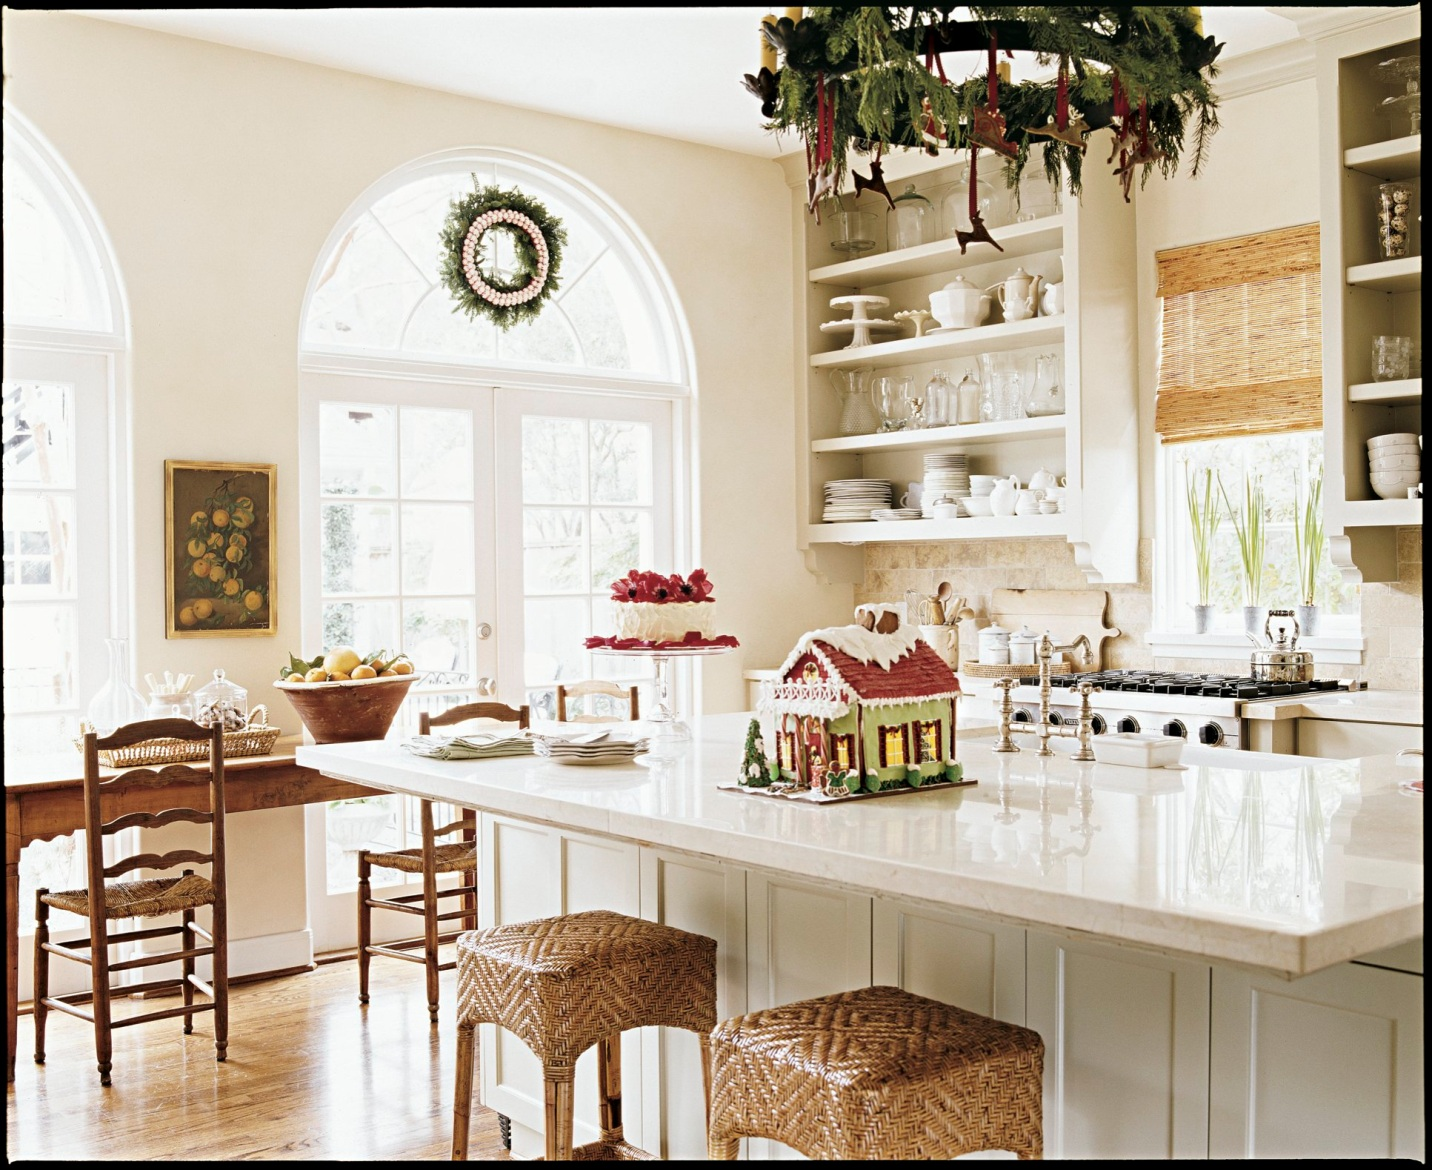 7 tips of Christmas Kitchen Décor to Cheer Up the Cook! arenteiro